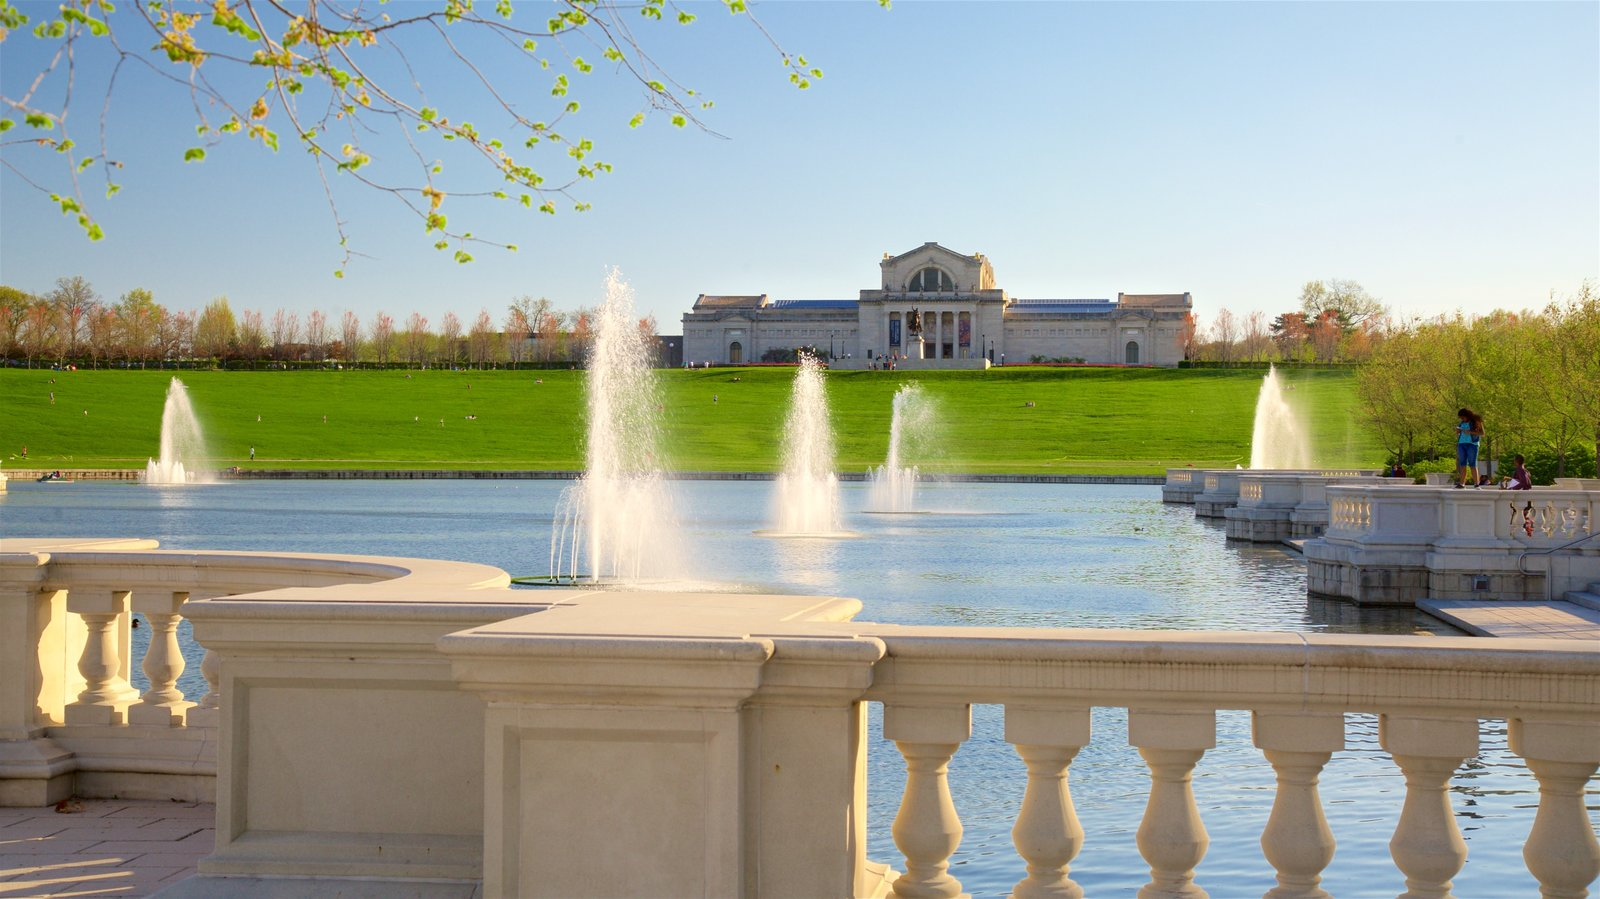 St. Louis Art Museum featuring an administrative buidling, a park and a fountain